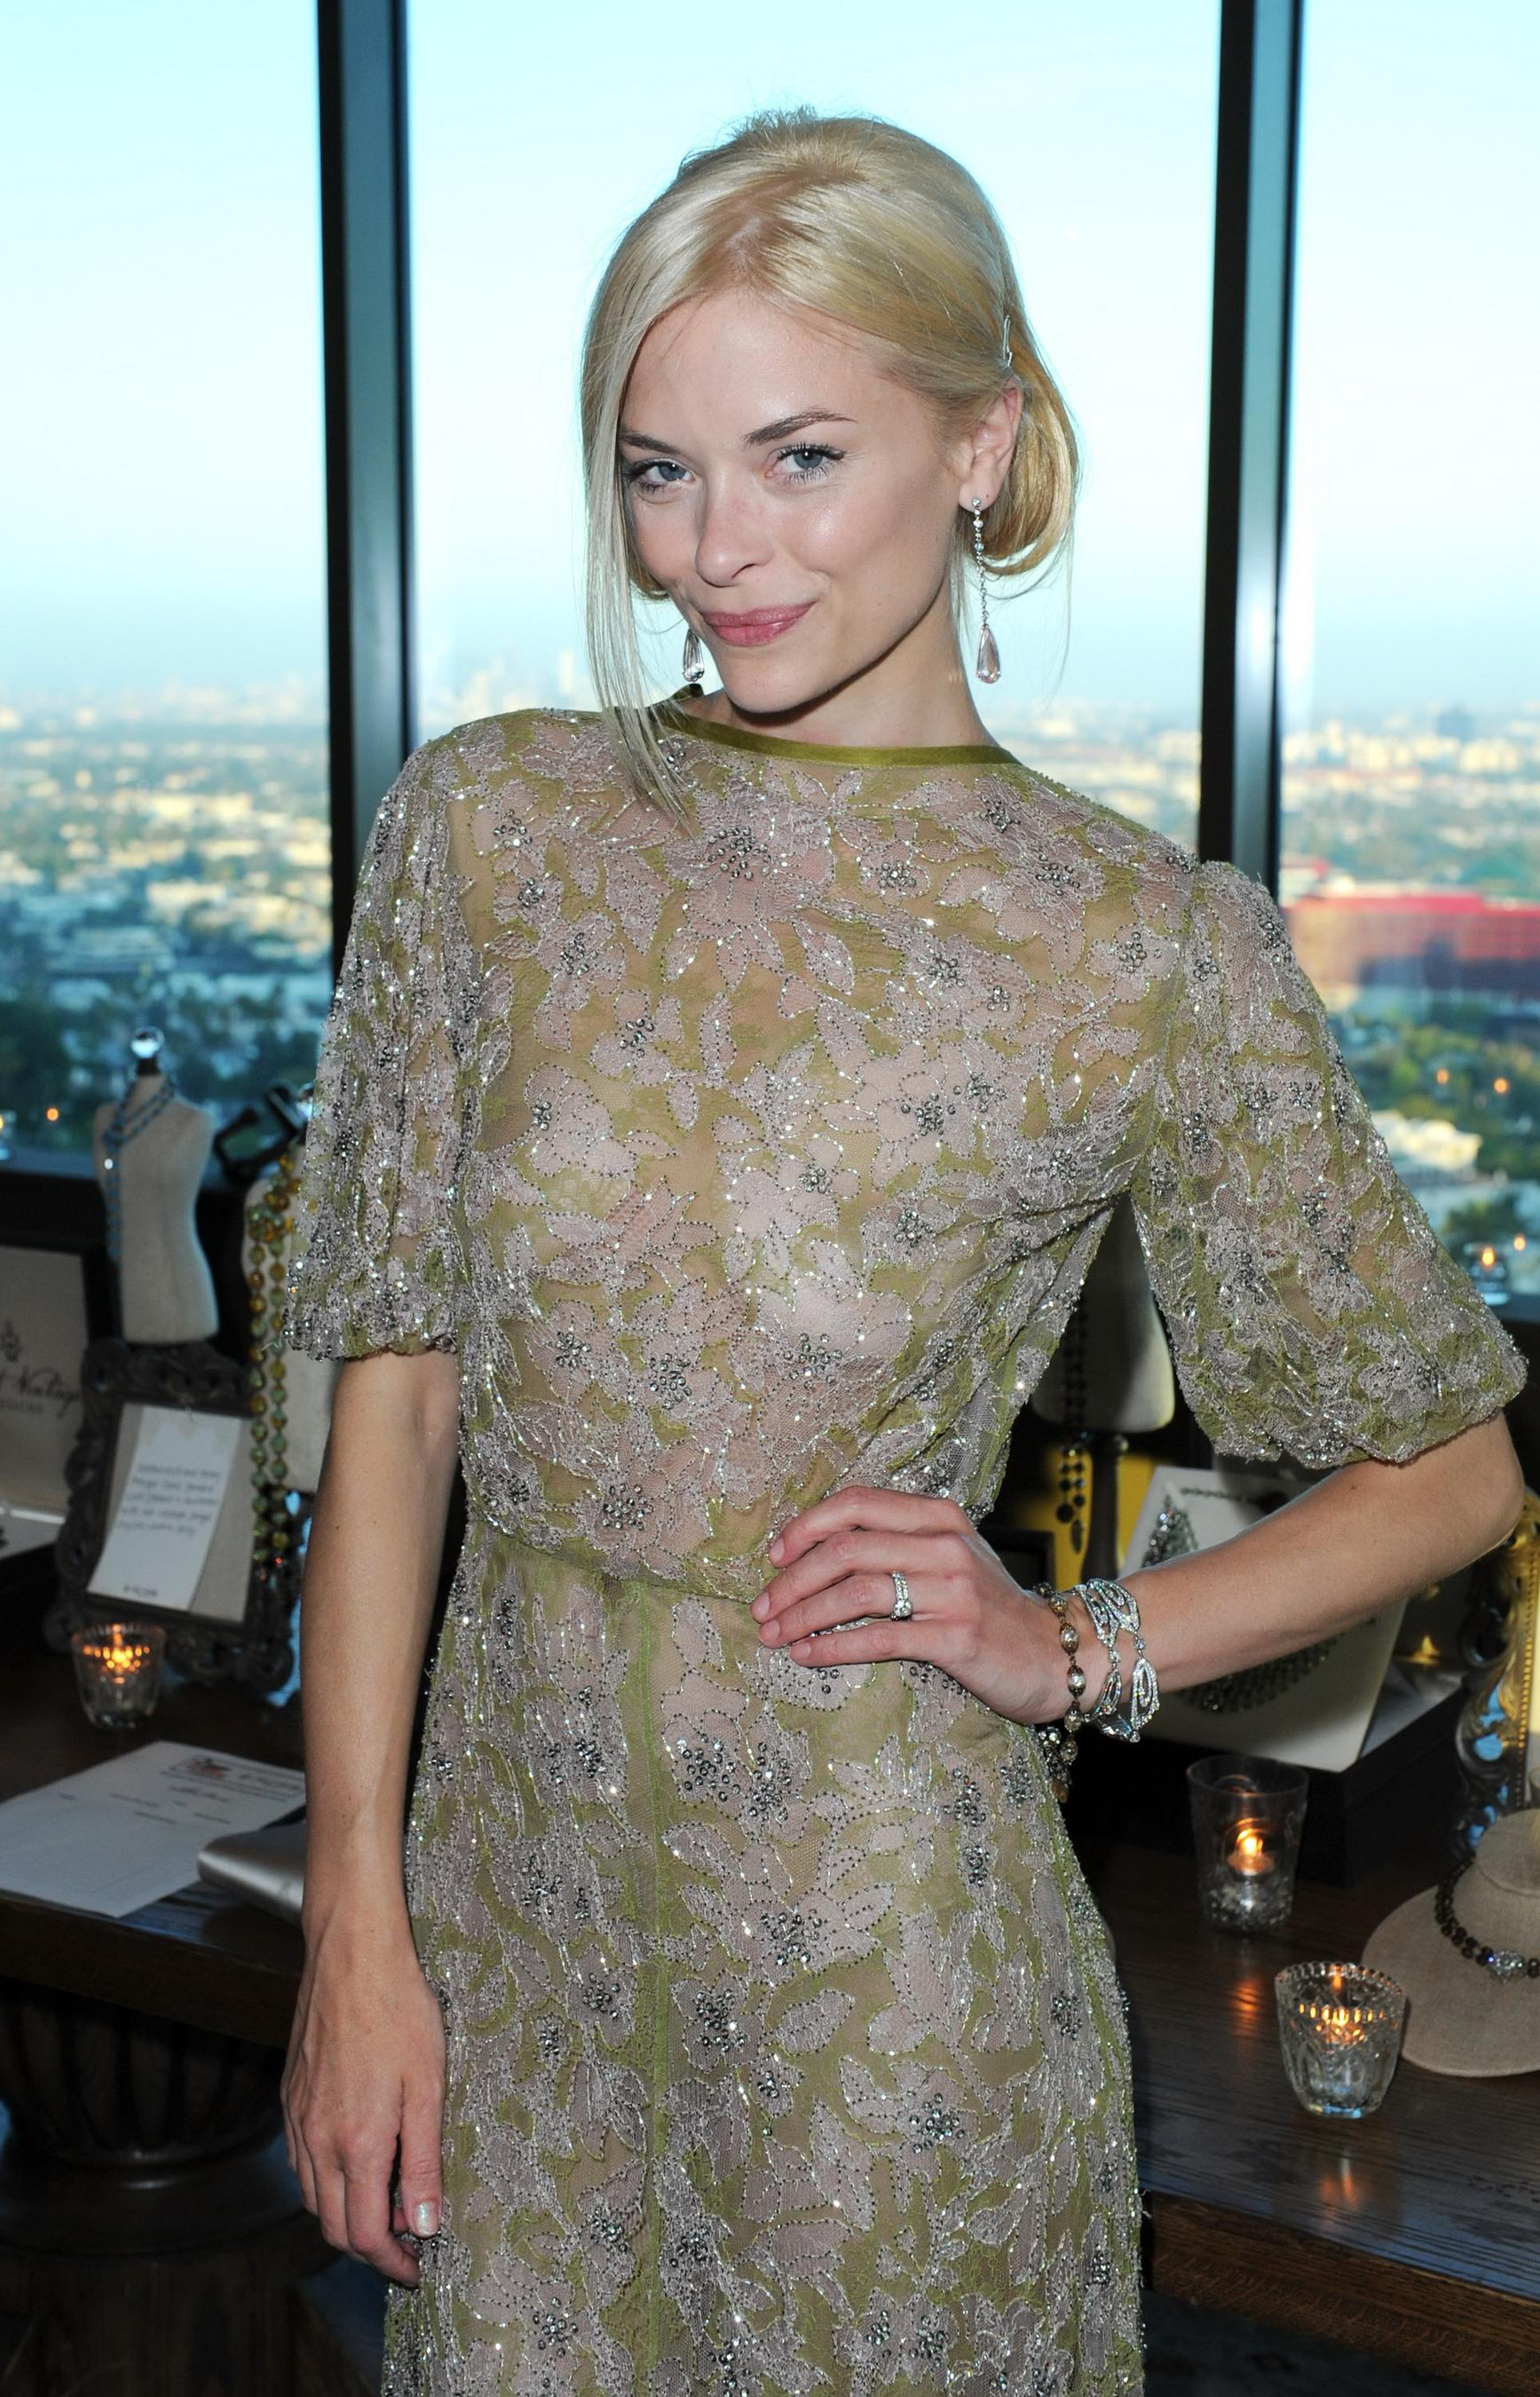 Jaime King - Photo Gallery